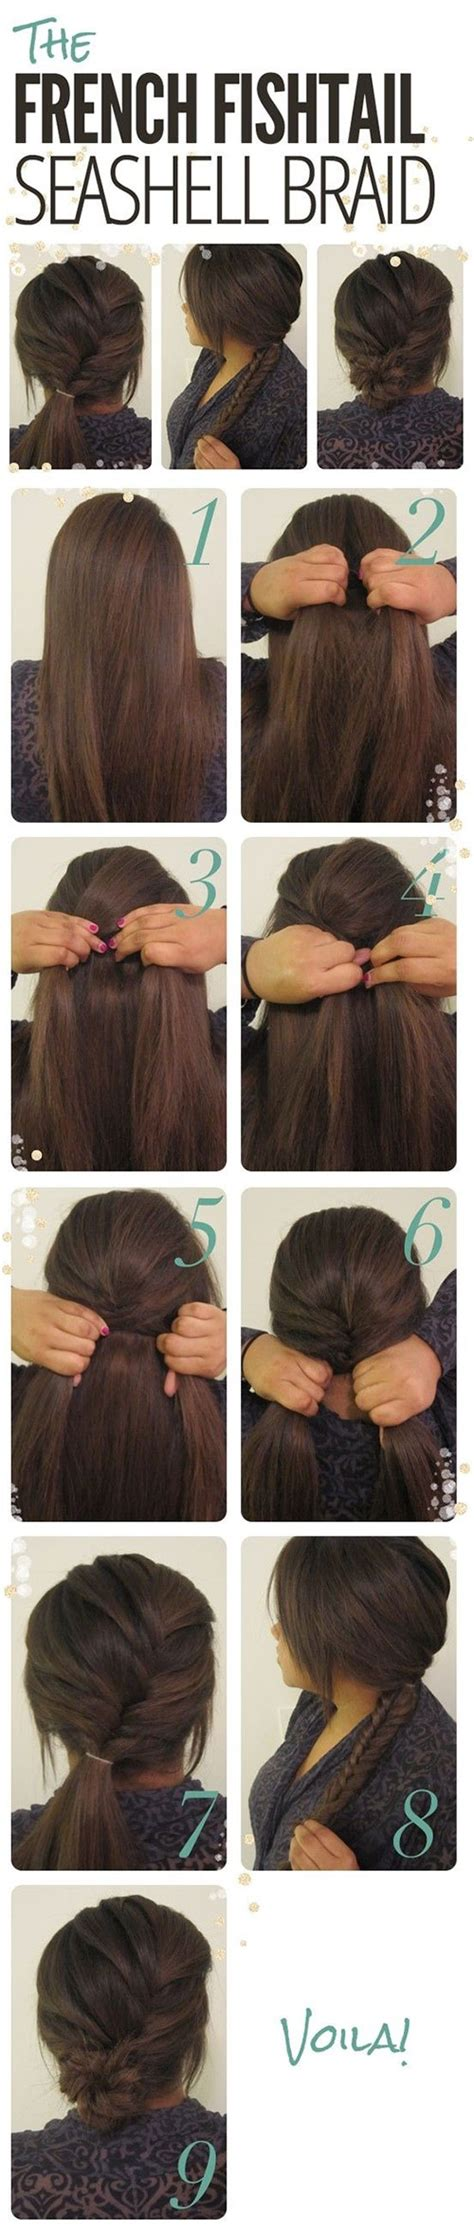 cool braids steps 20 easy step by step summer braids style tutorials for